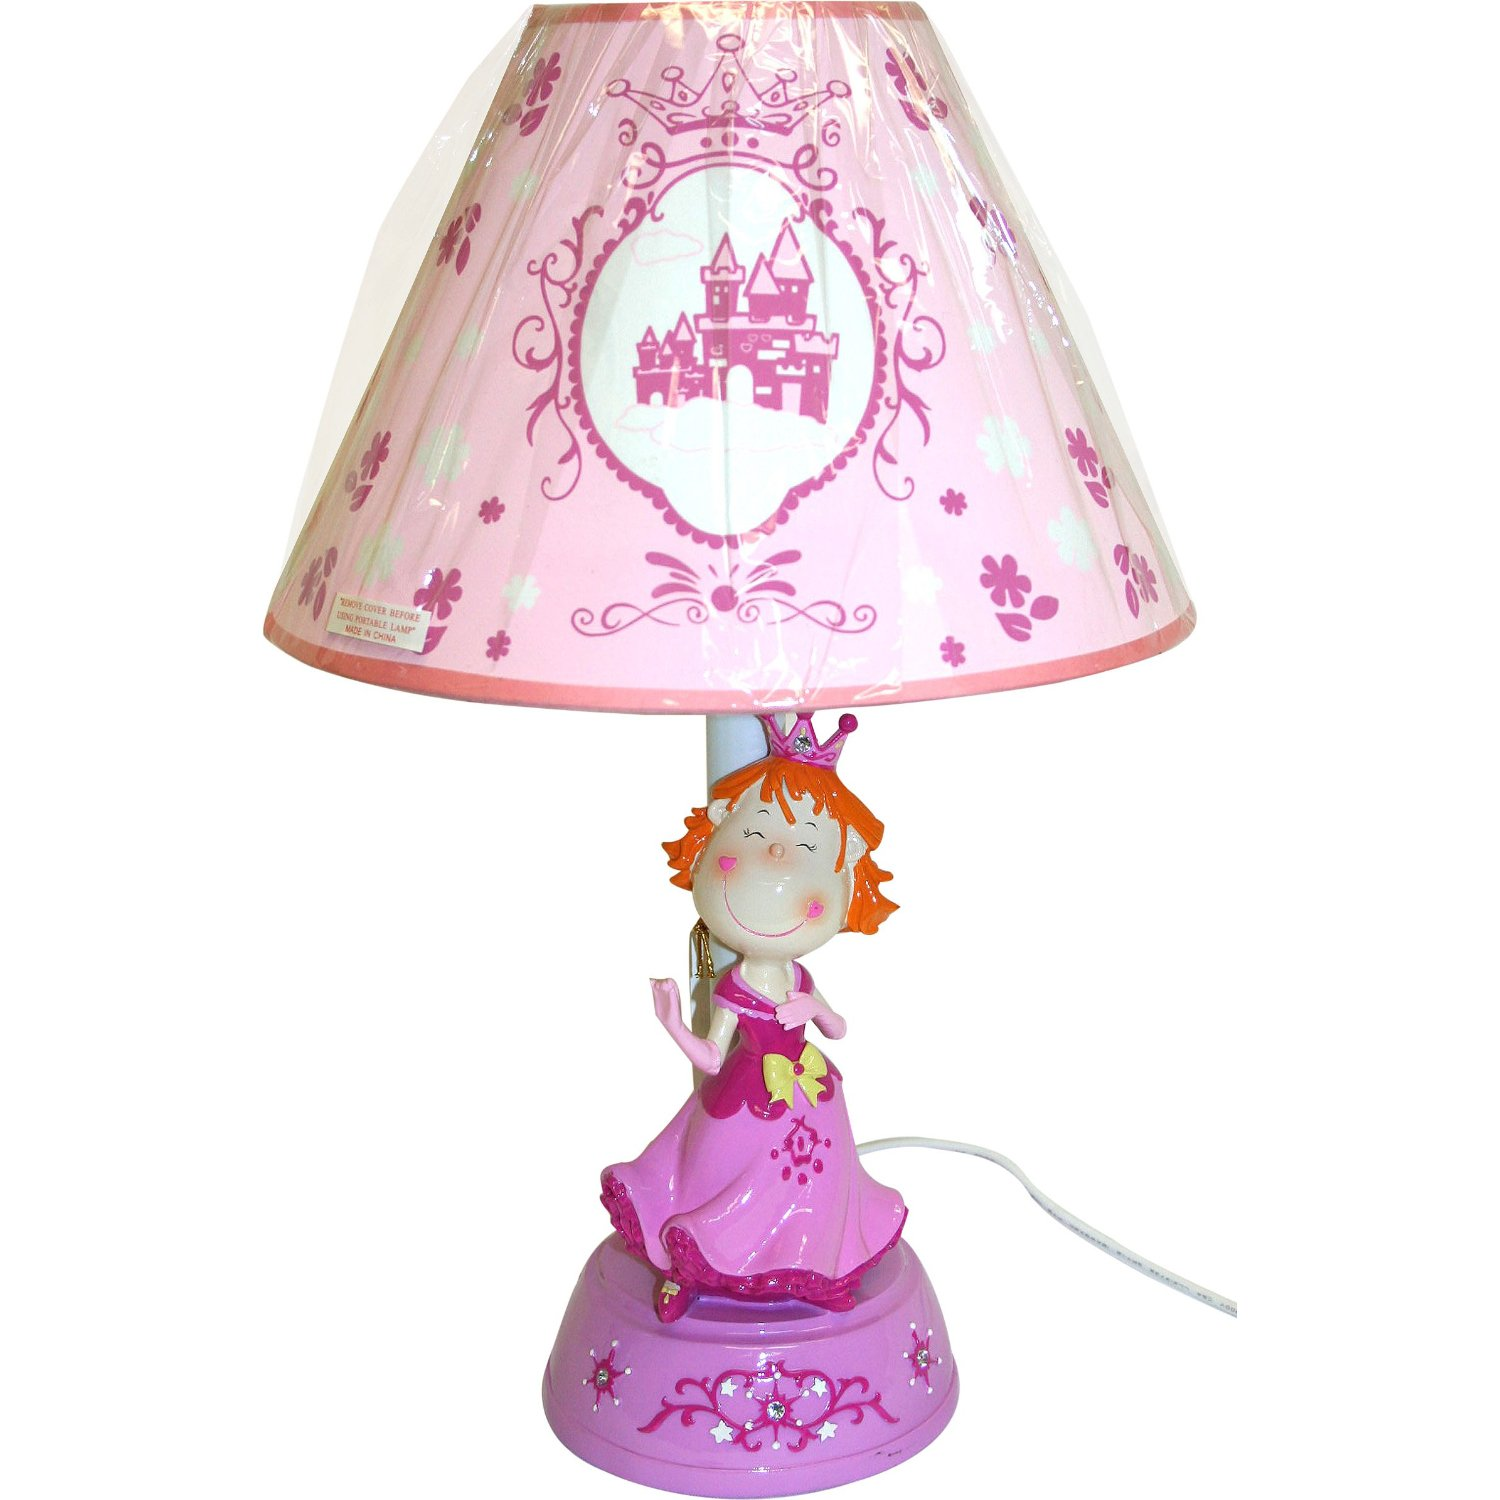 Cute lamps For Kids Rooms Lighting | Sweet Home Design